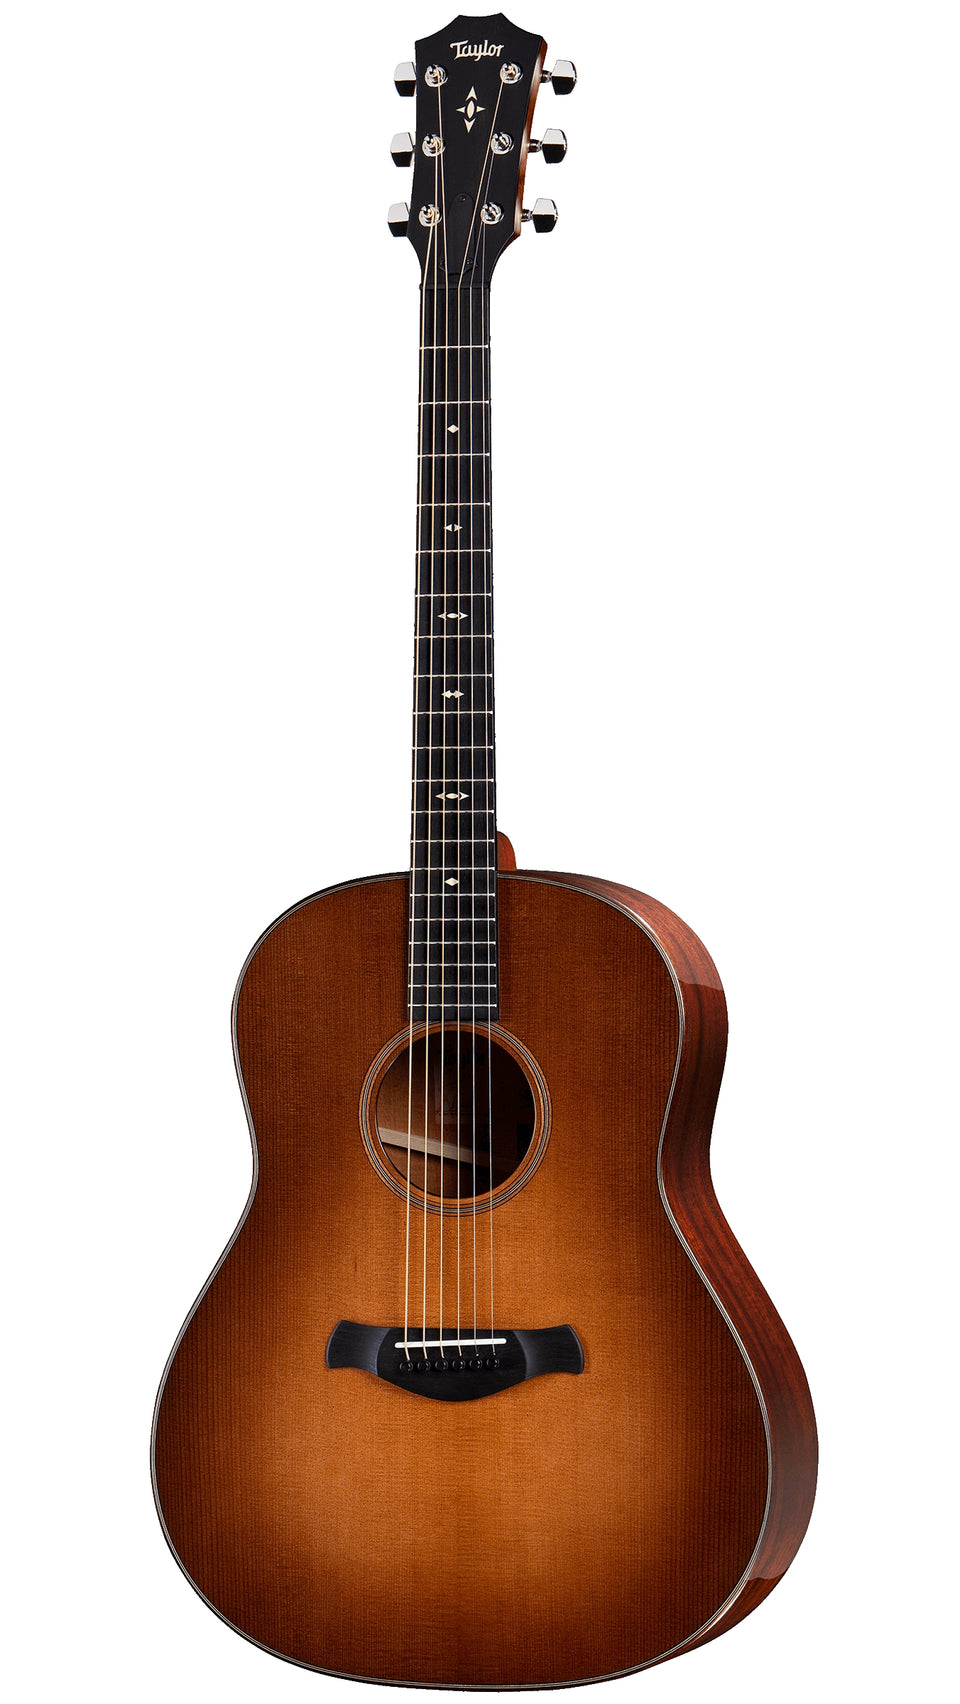 Taylor Builder's Edition 517e Acoustic Guitar - Wild Honey Burst